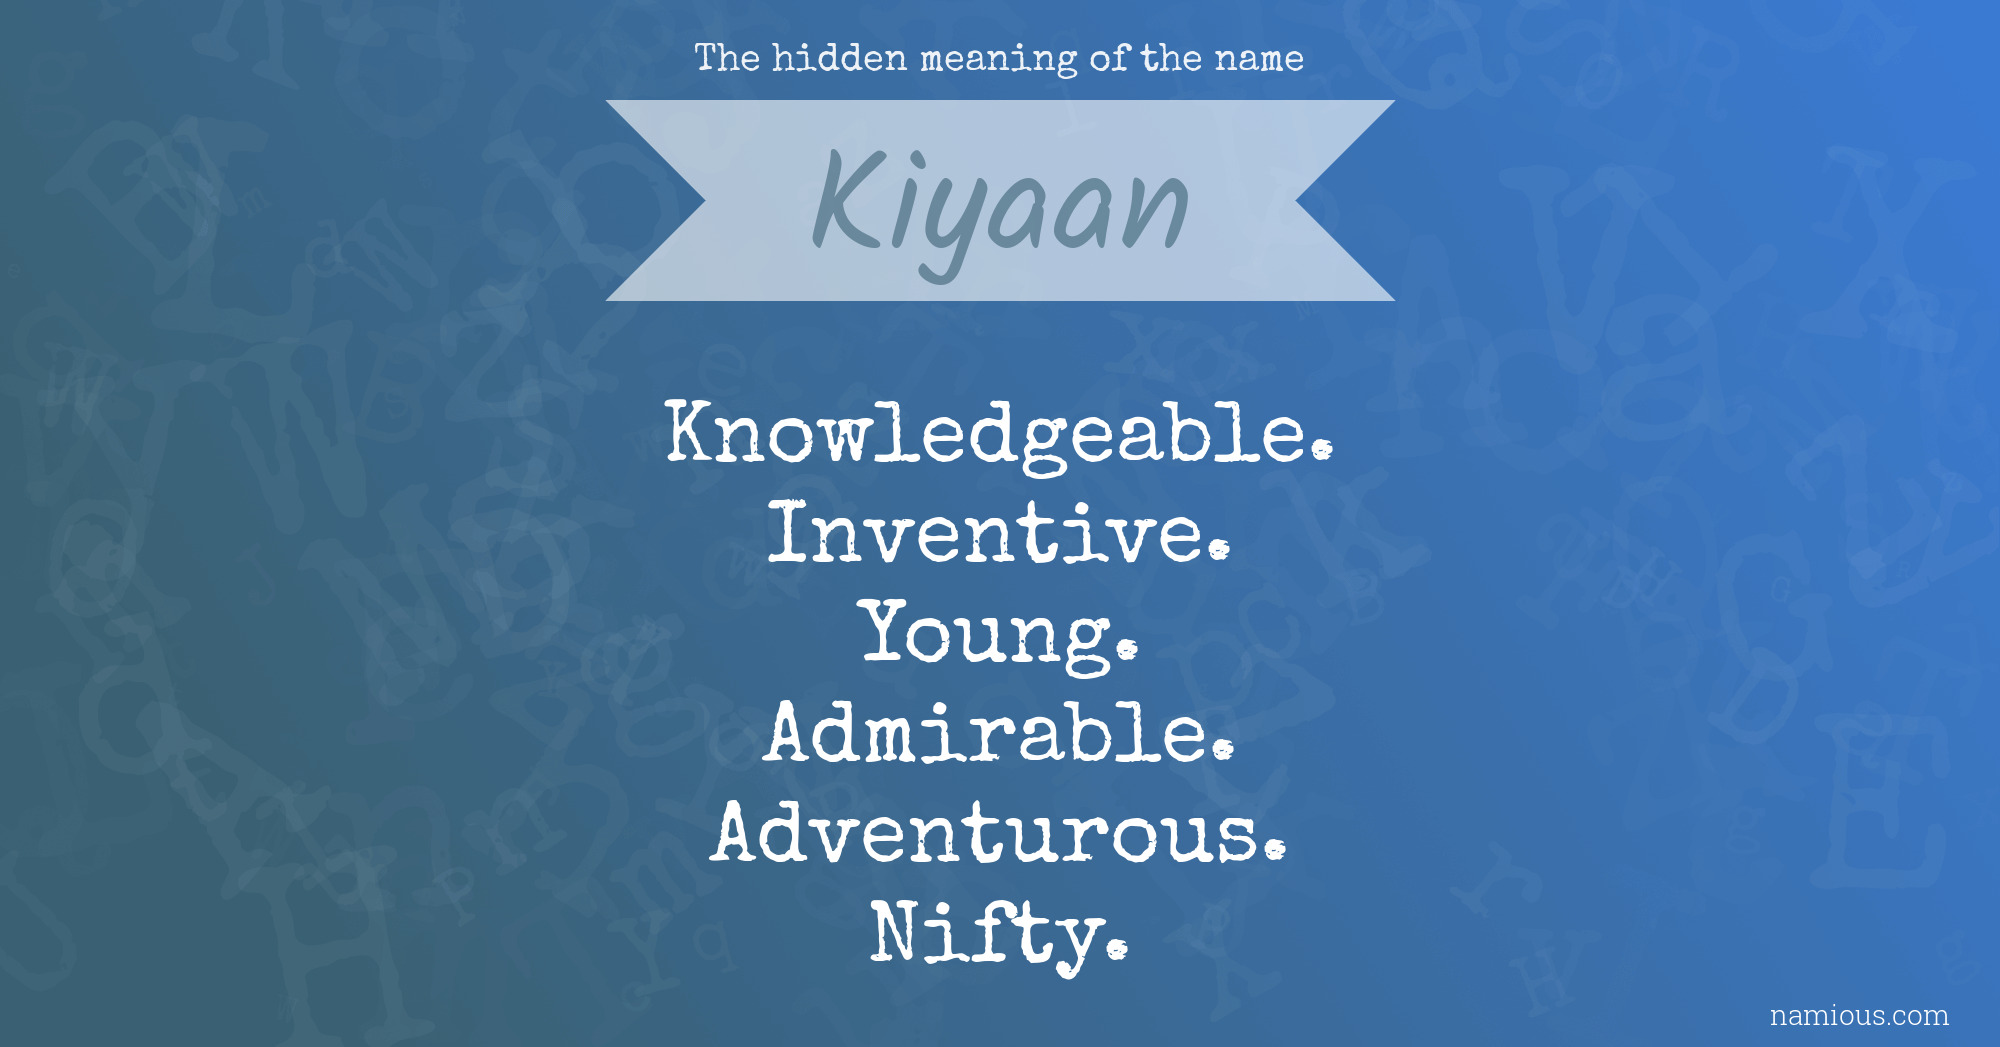 The hidden meaning of the name Kiyaan | Namious